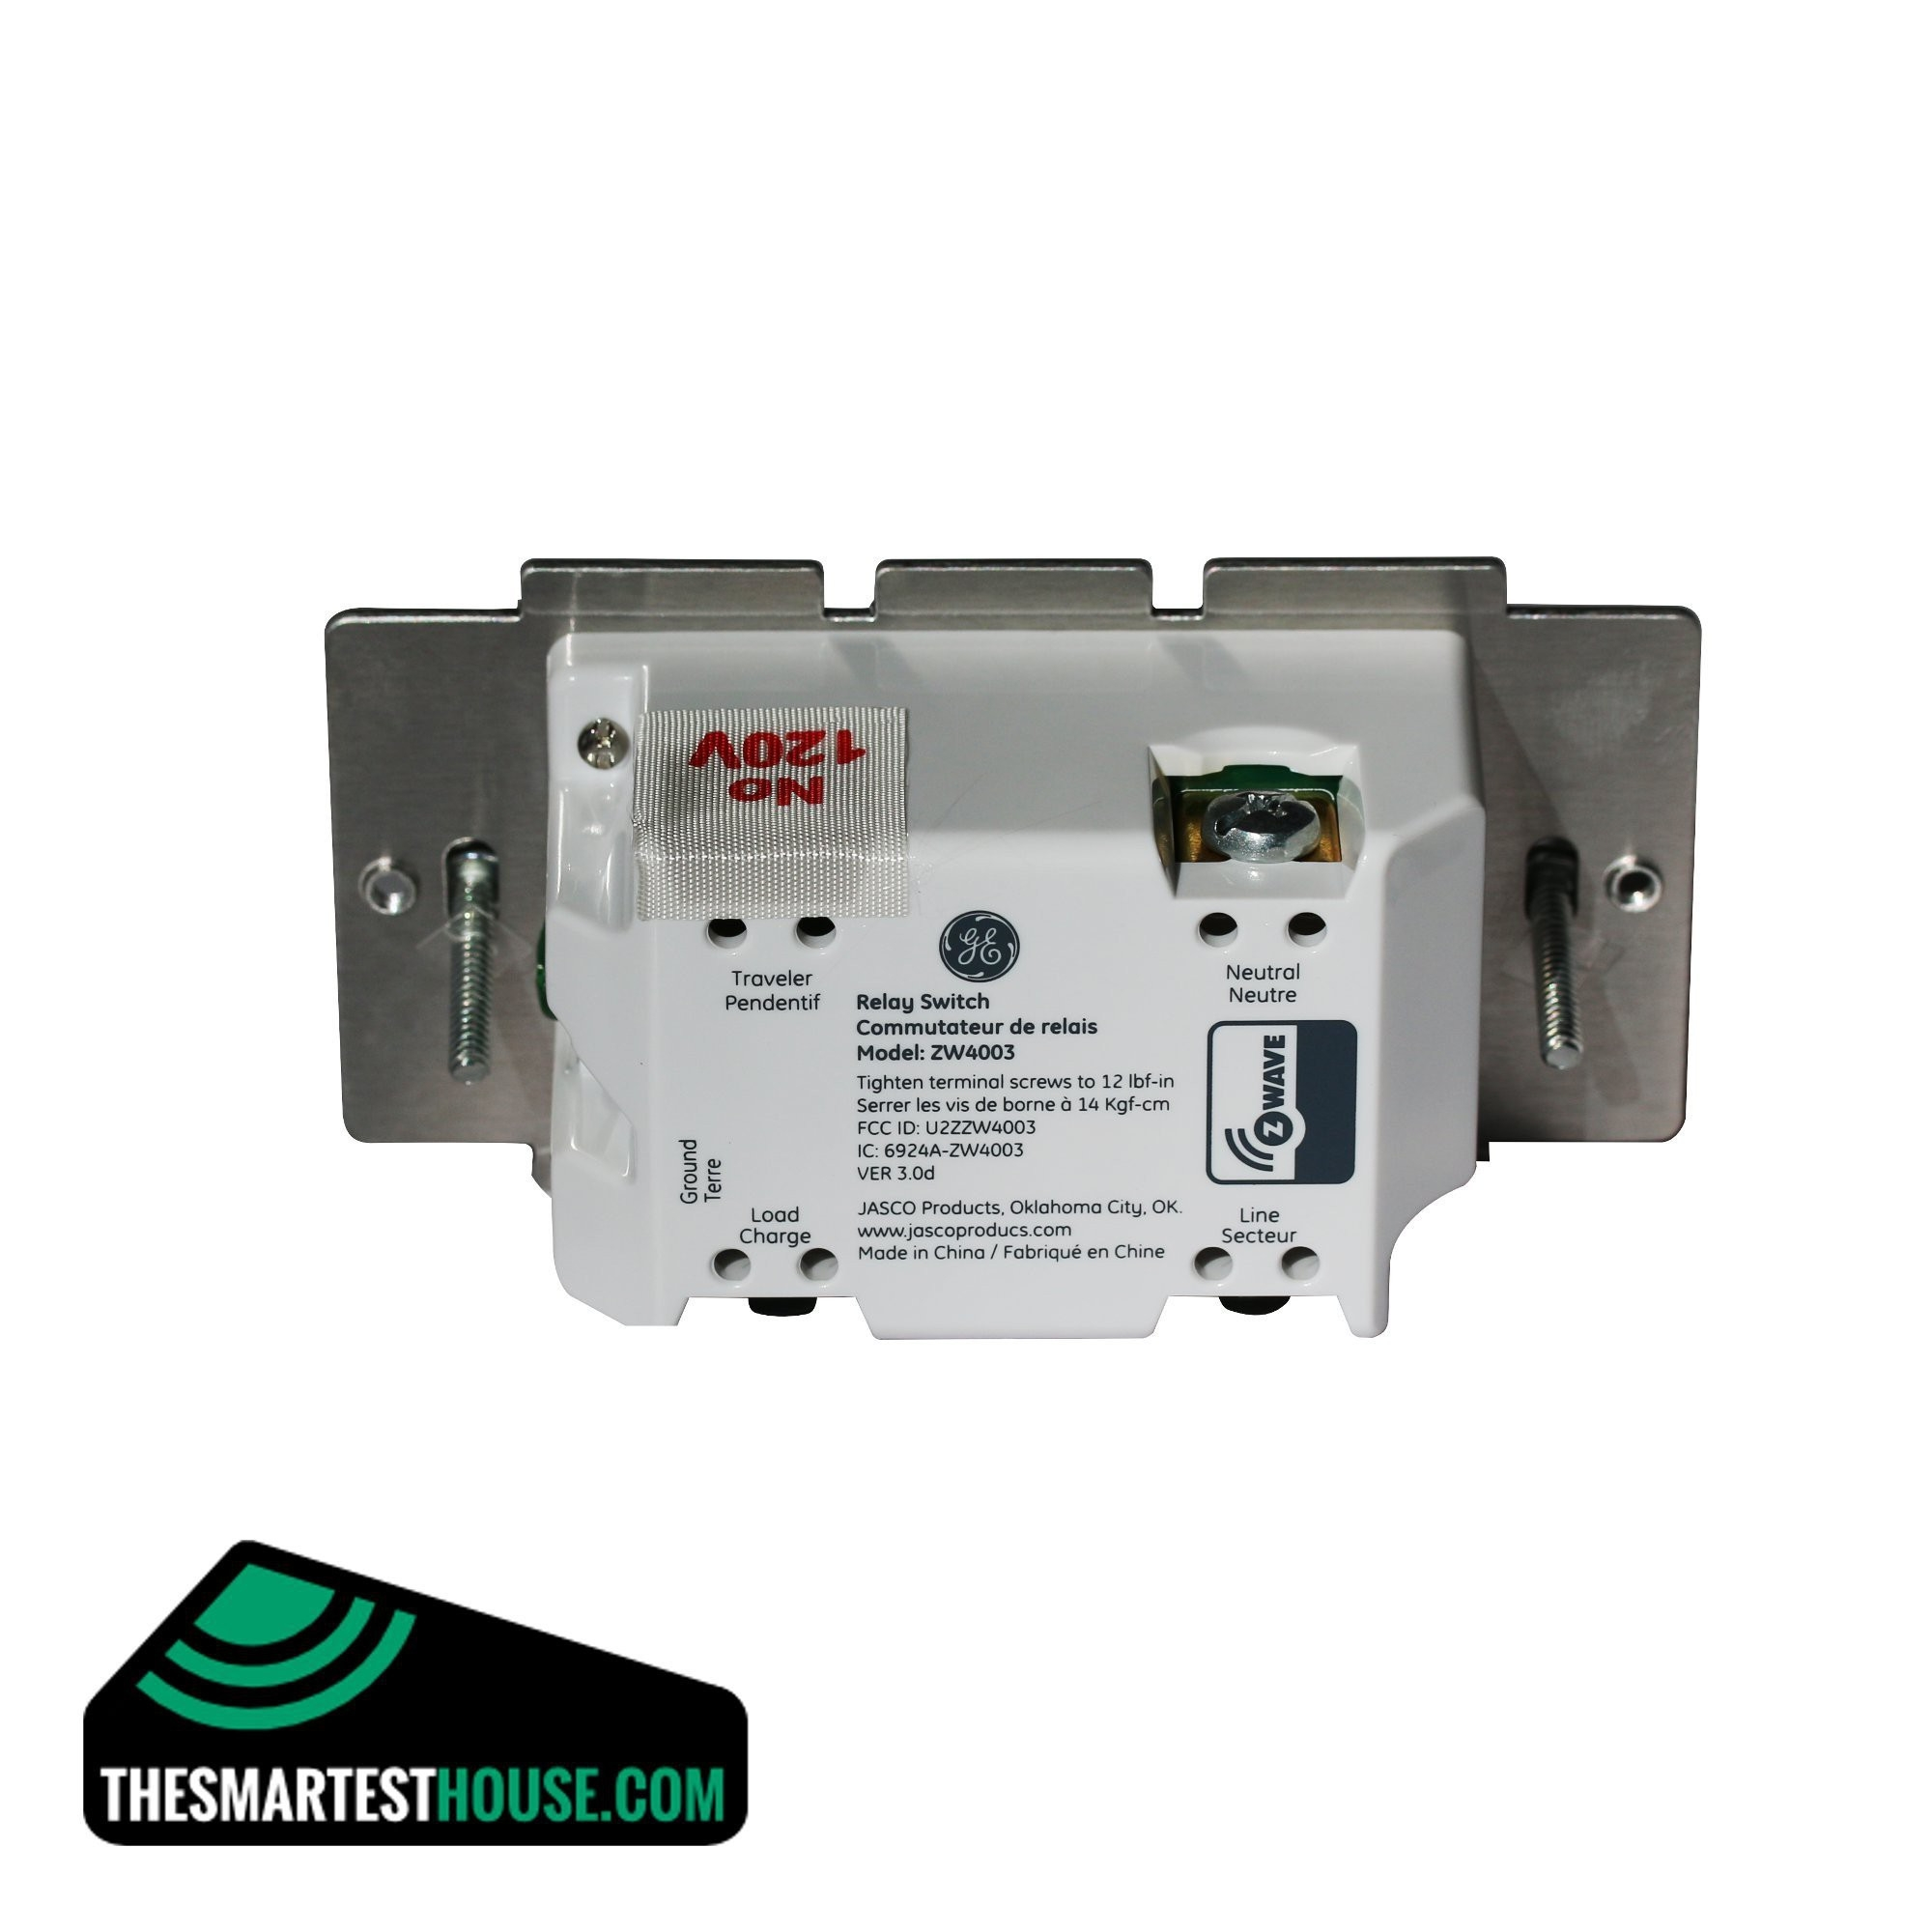 hight resolution of 3 way switch wiring diagram free wiring diagram3 way switch wiring diagram wiring diagram neutral valid